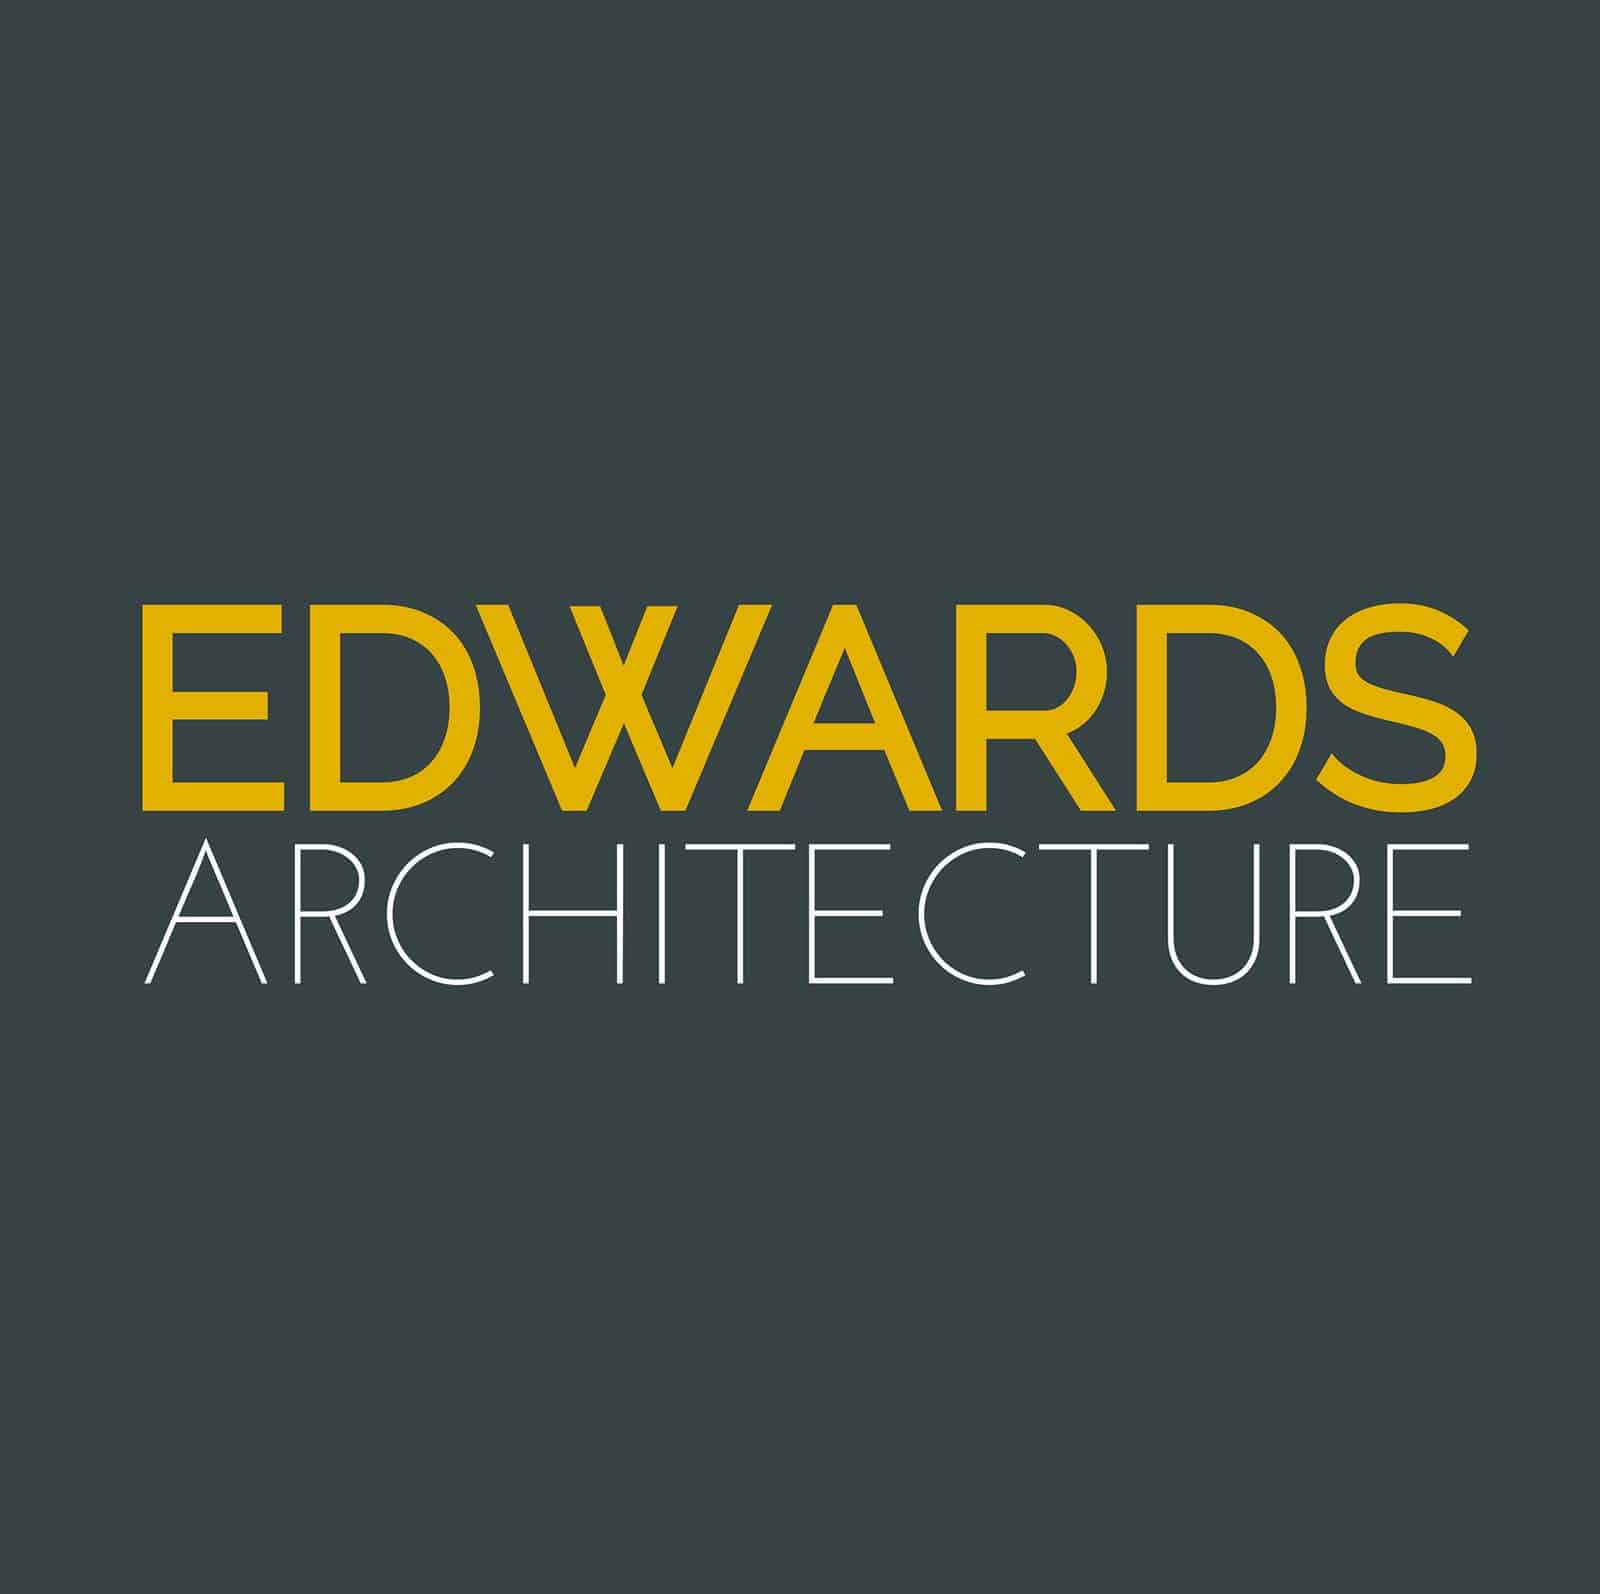 Edwards Architecture Square Logo 4X